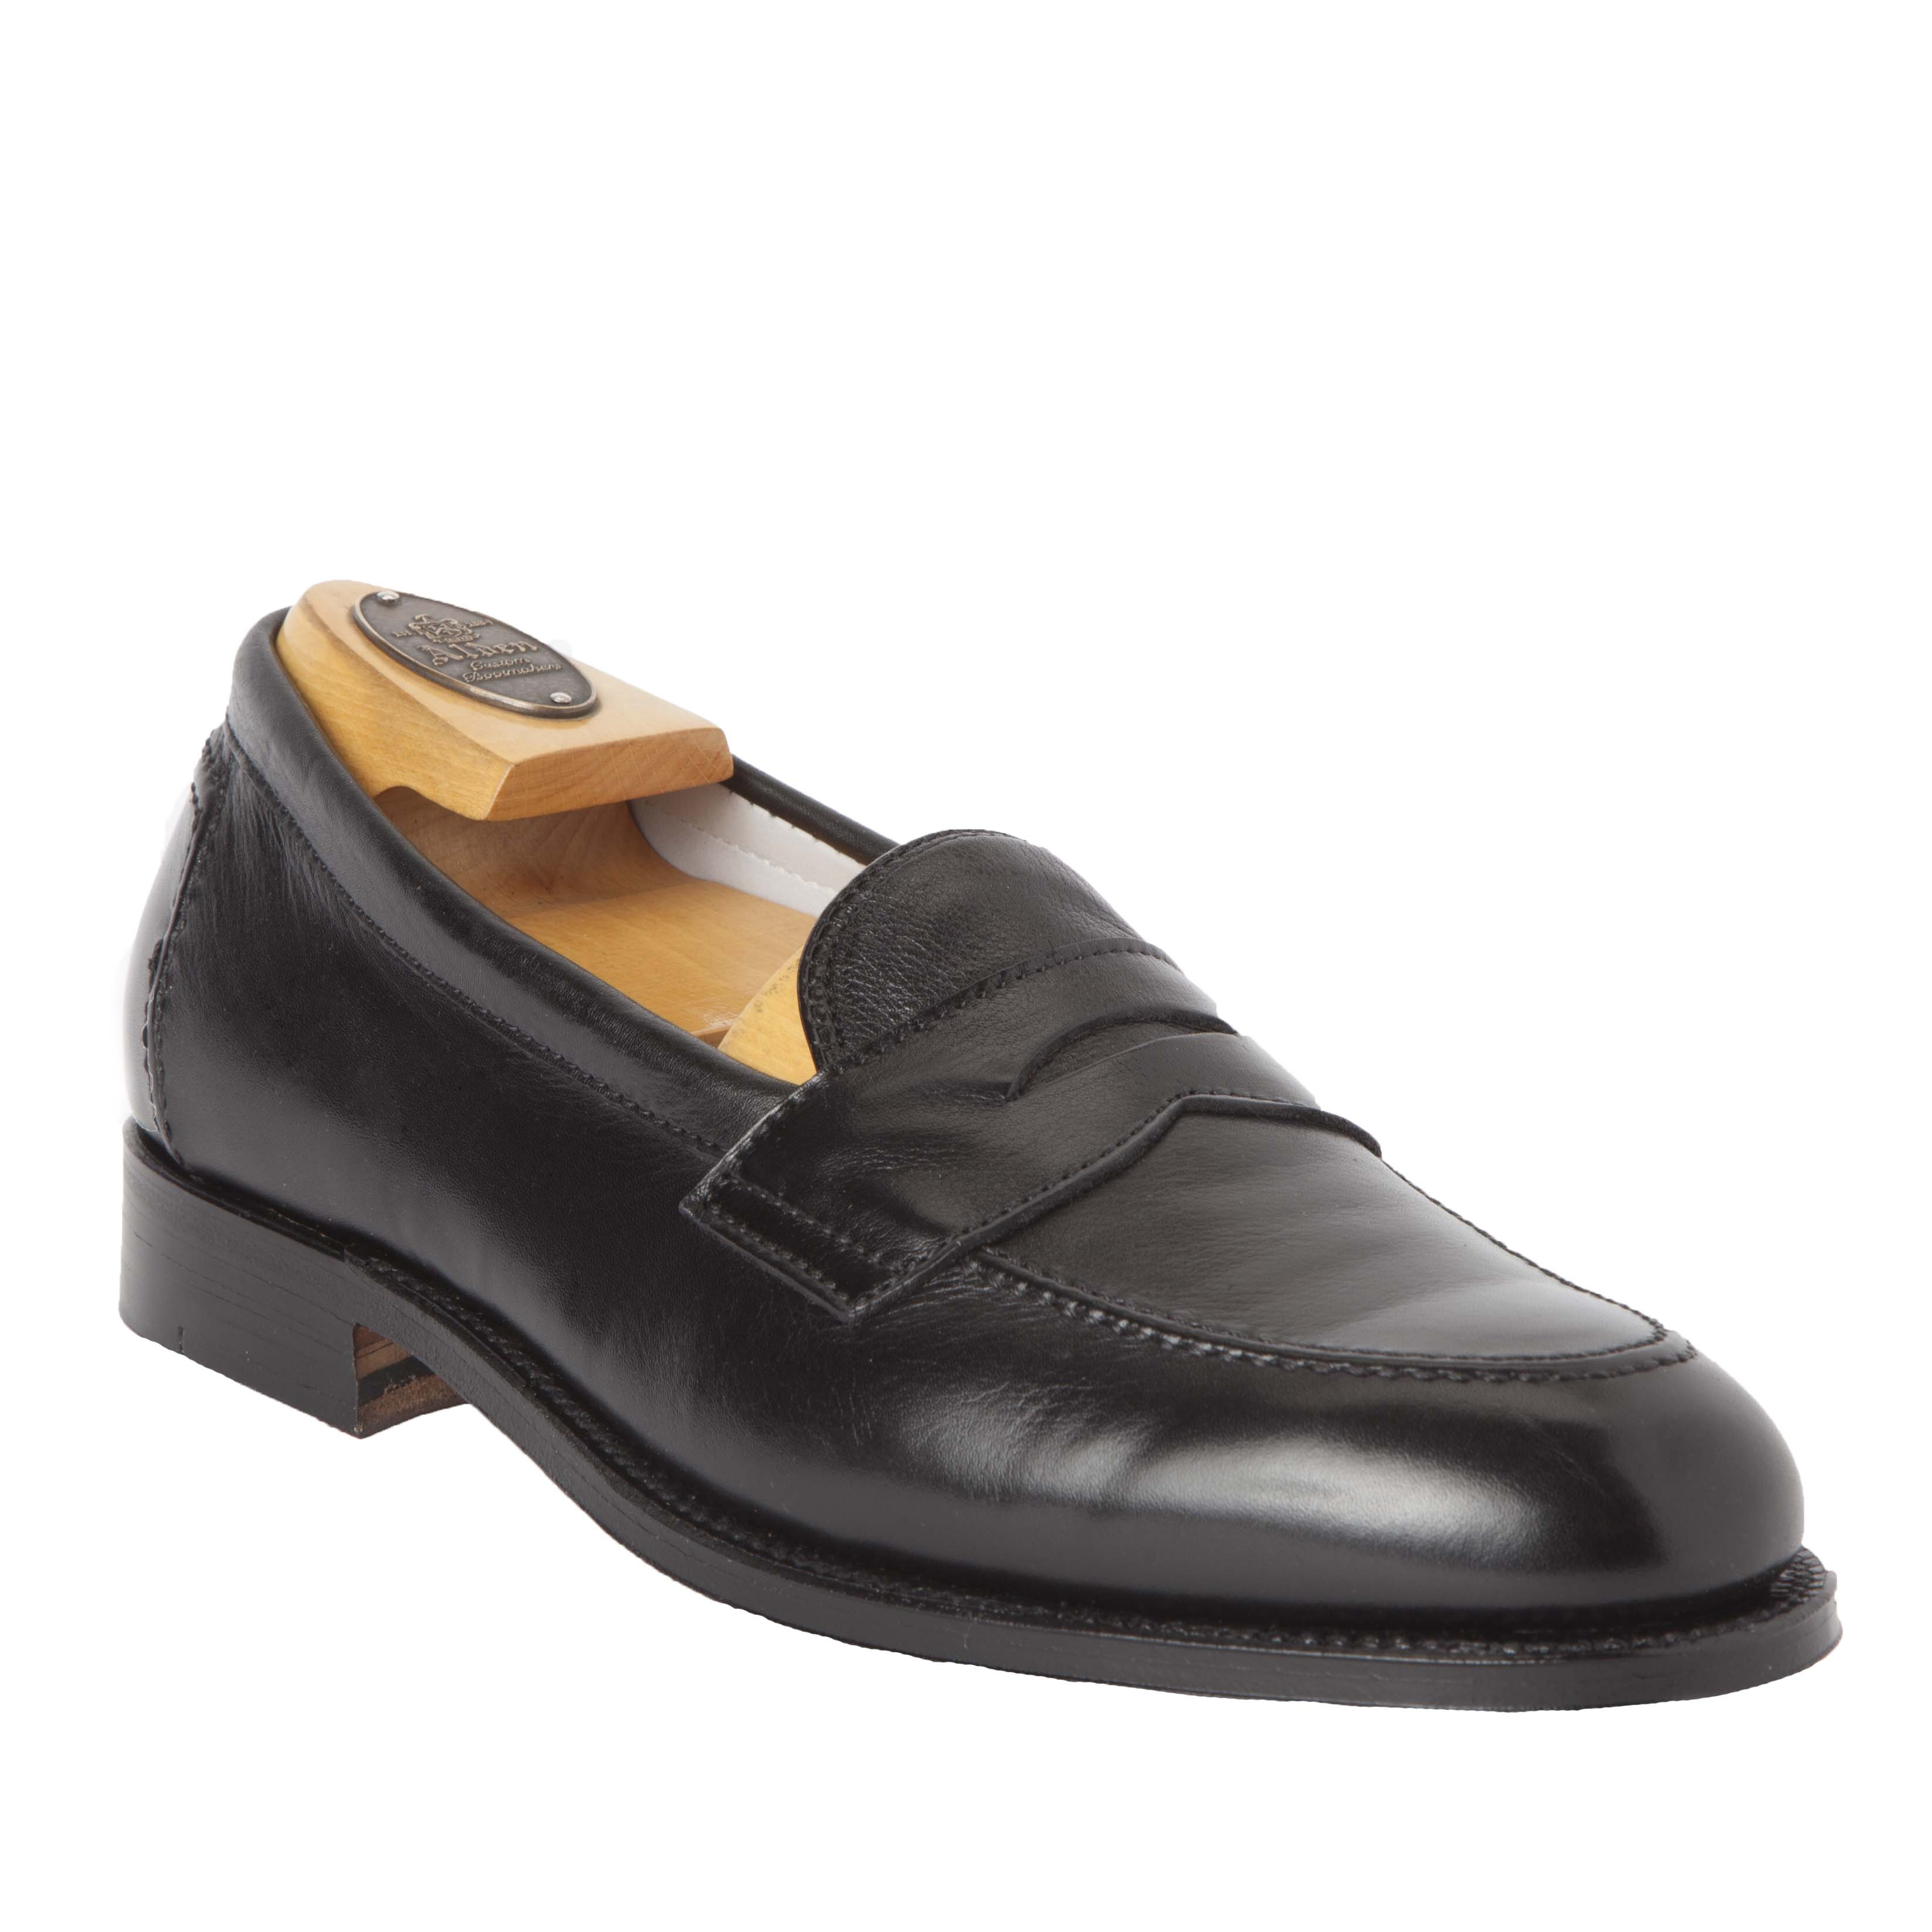 Flex Penny LoaferBlack Calfskin9695F – Alden Shoes Madison Avenue ... acfbaa81fd6